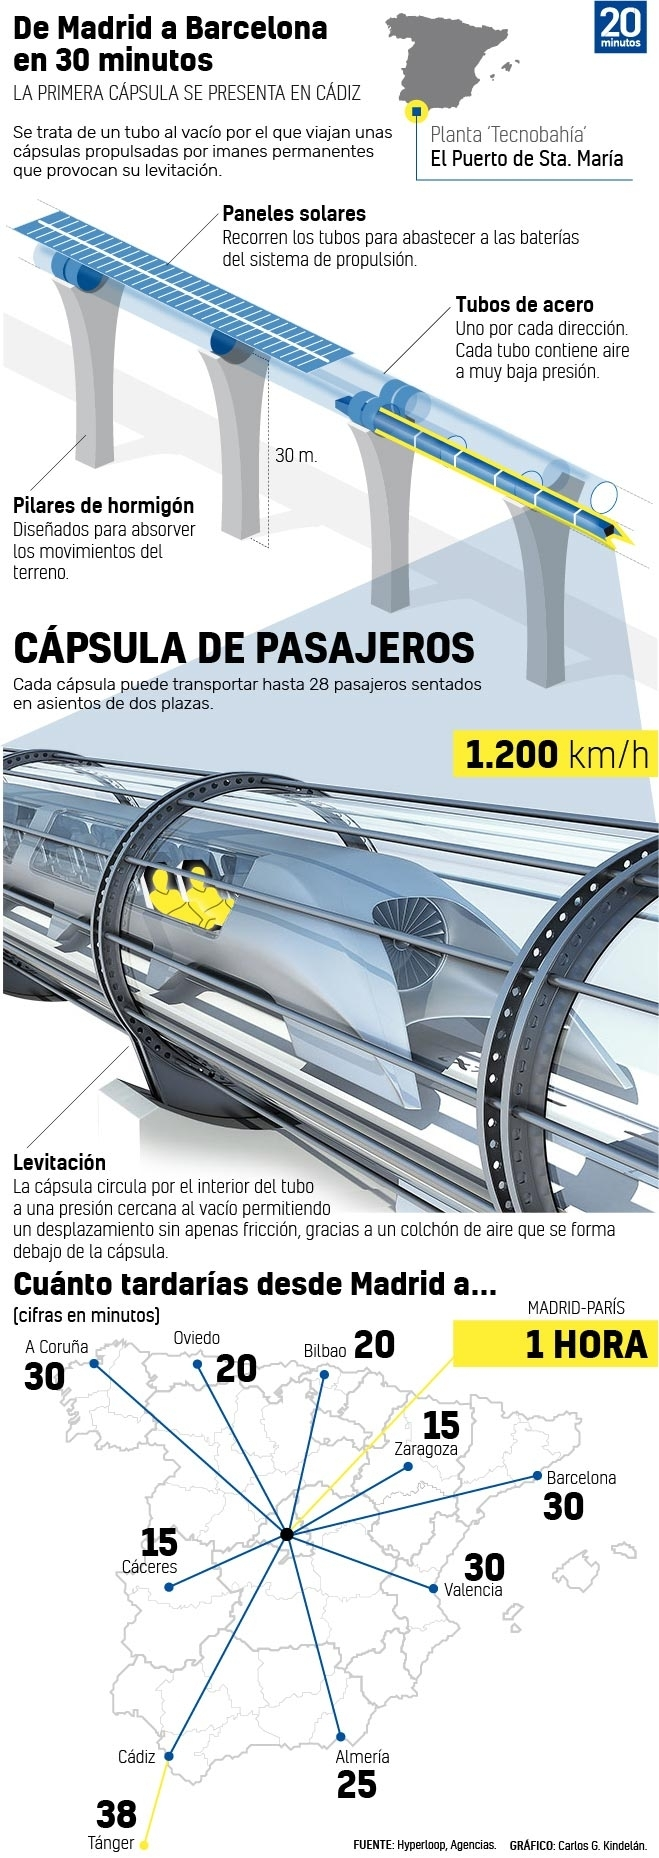 Presentan la primera cápsula 'made in Spain' del tren supersónico Hyperloop 794327-659-1858